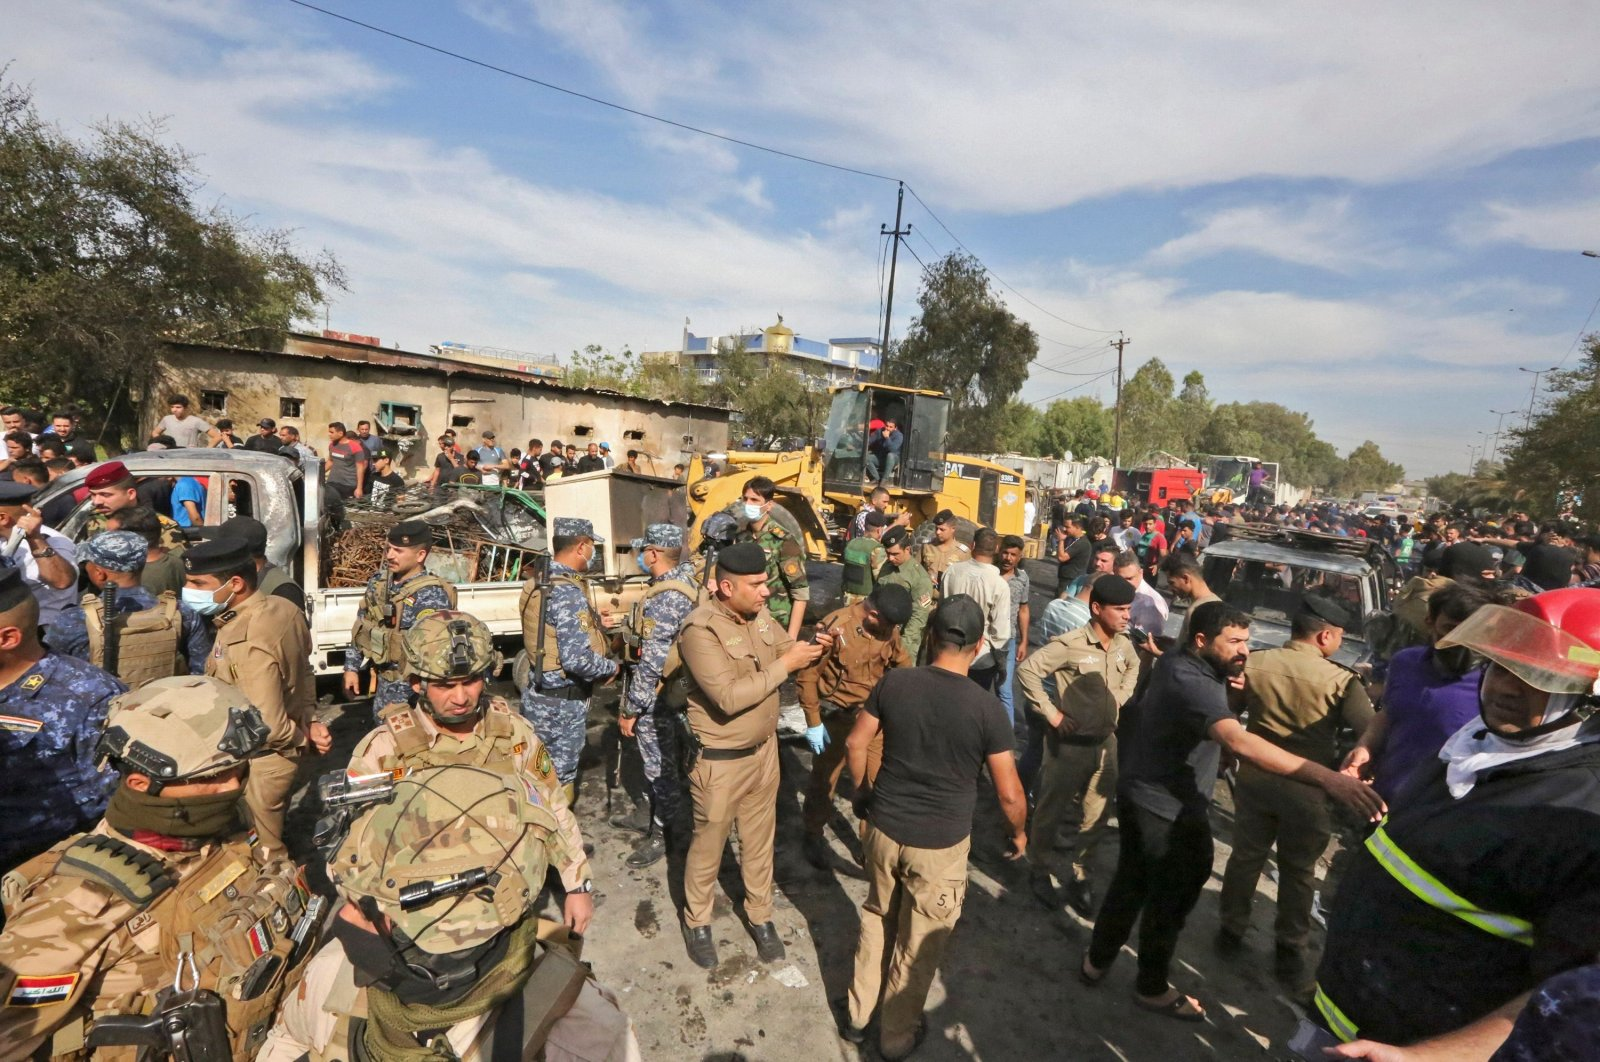 Members of the Iraqi army and security forces gather at the scene of an explosion in the Habibiya district of the Sadr City suburb of Iraq's capital Baghdad, April 15, 2021. (AFP Photo)